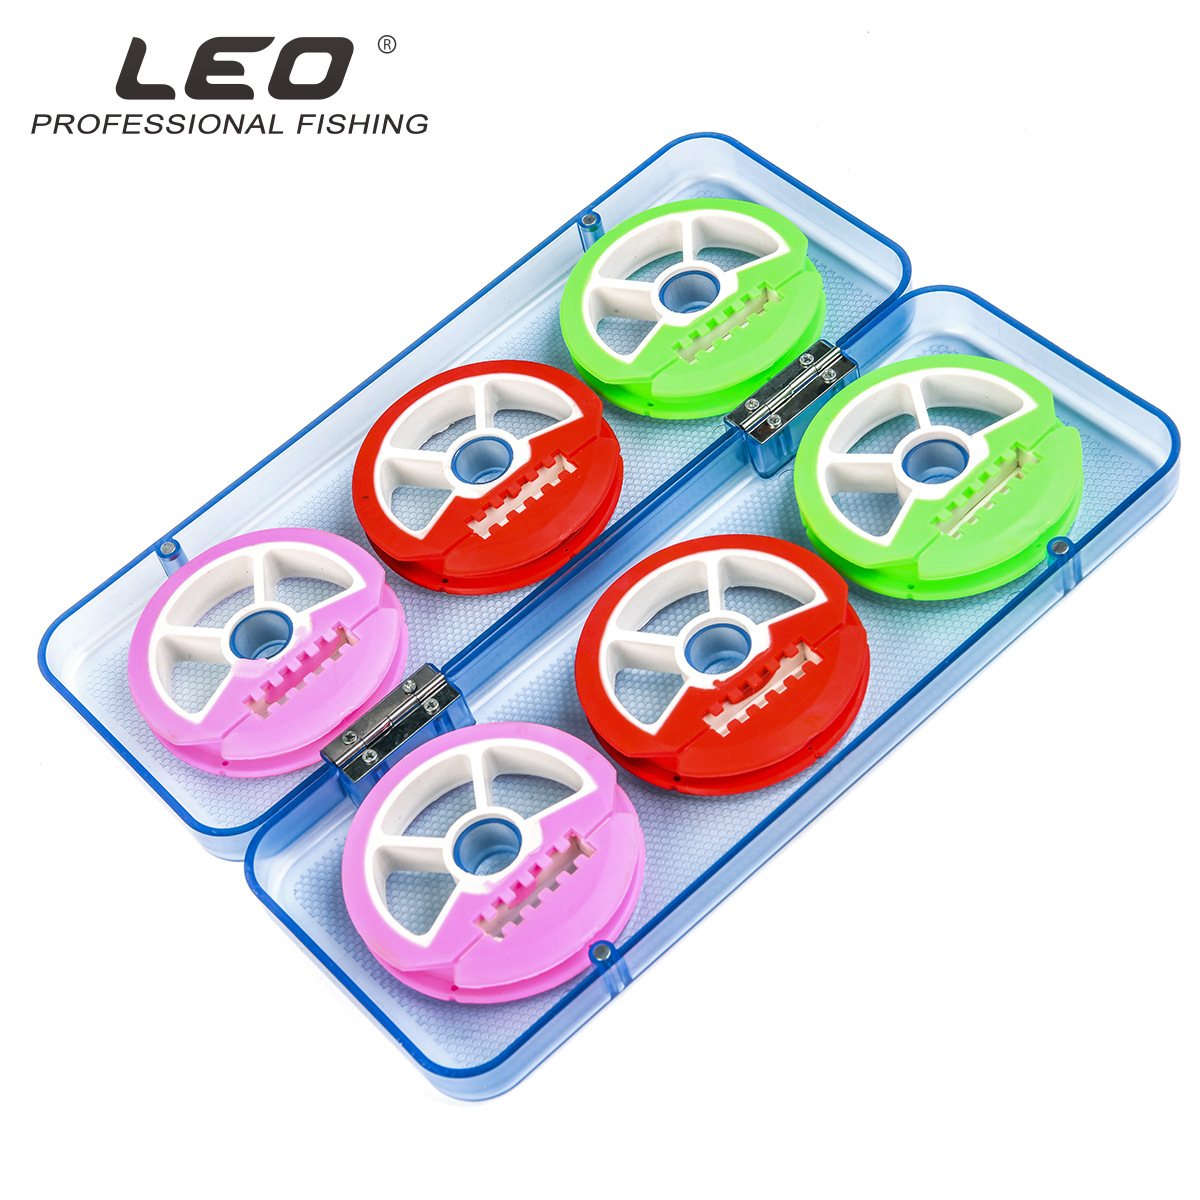 LEO Fishing Box Spool Line Winding Board Large 6 axis 8 axis Silicone Shaft Main Box Colorful Rubber Main Shaft Coil Box Pesca|pesca|pesca box|  - title=